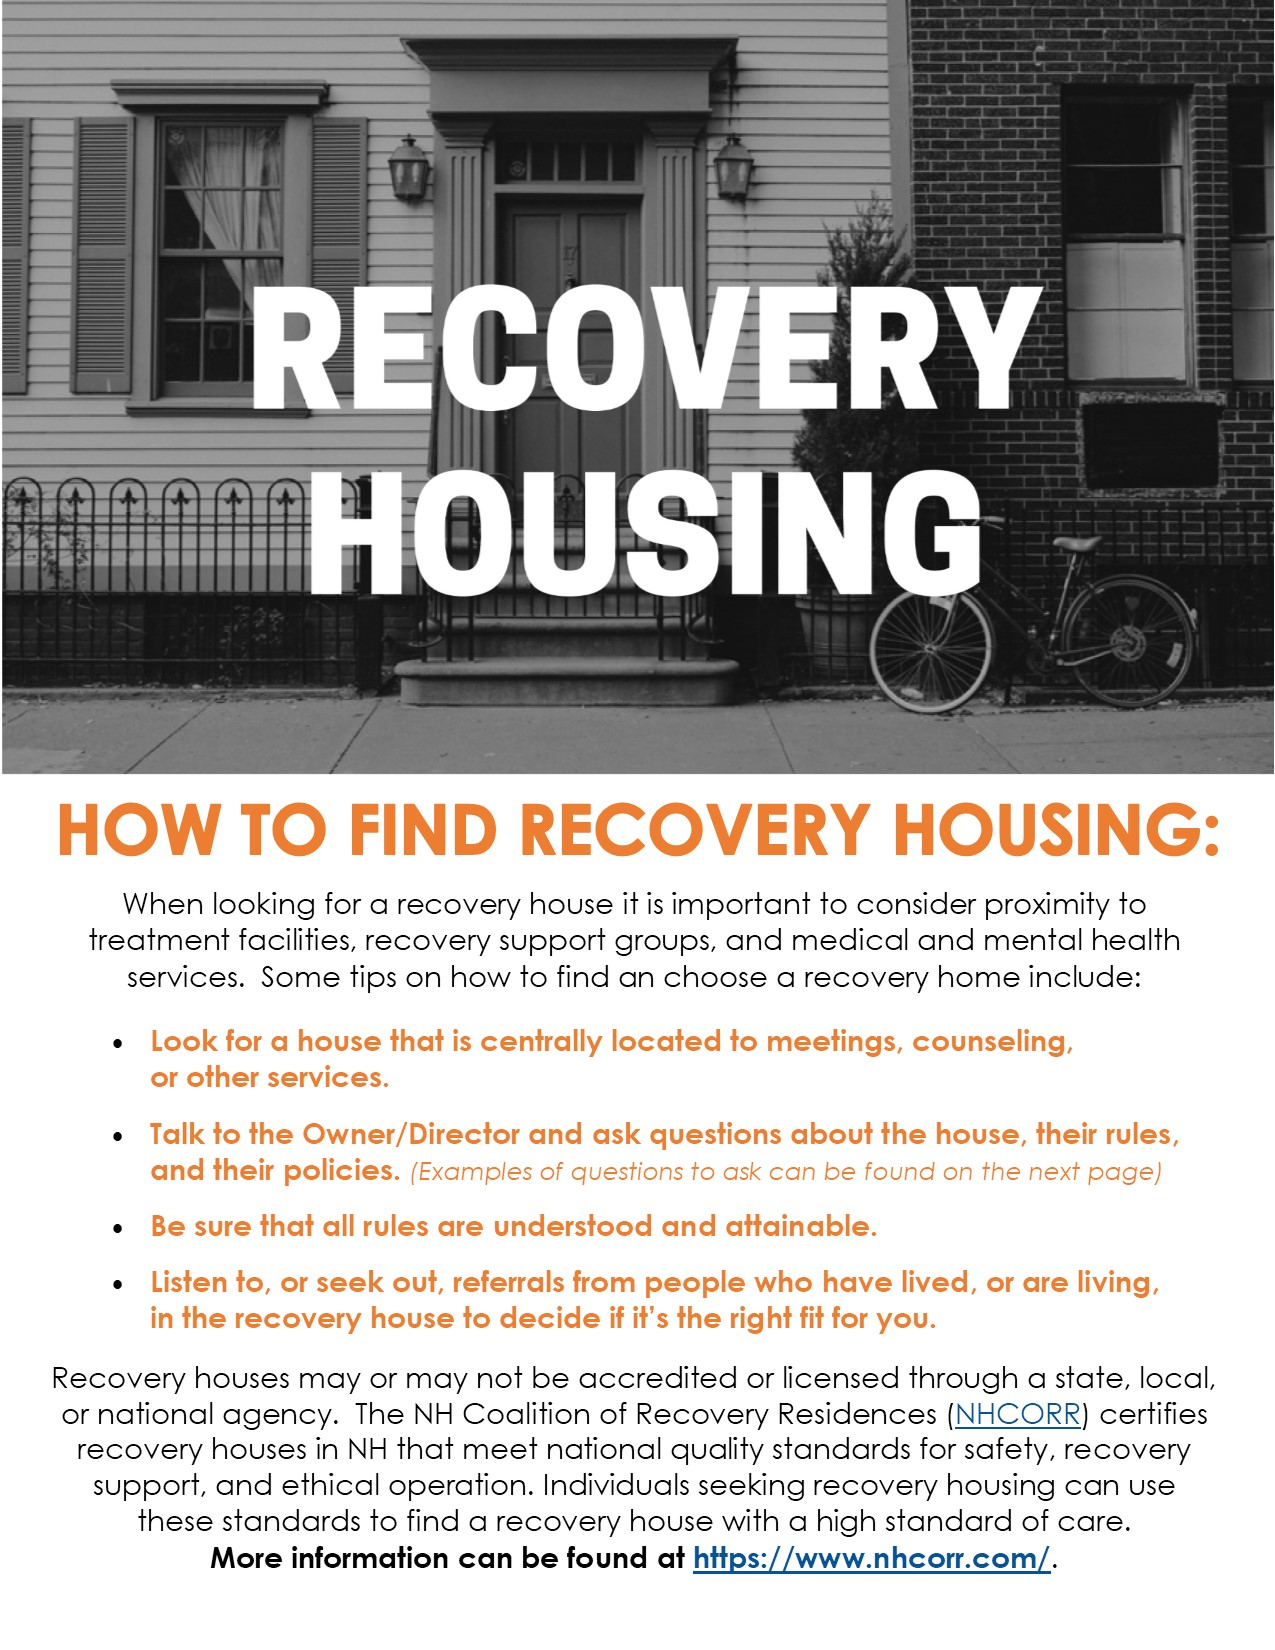 Recovery Housing in NH